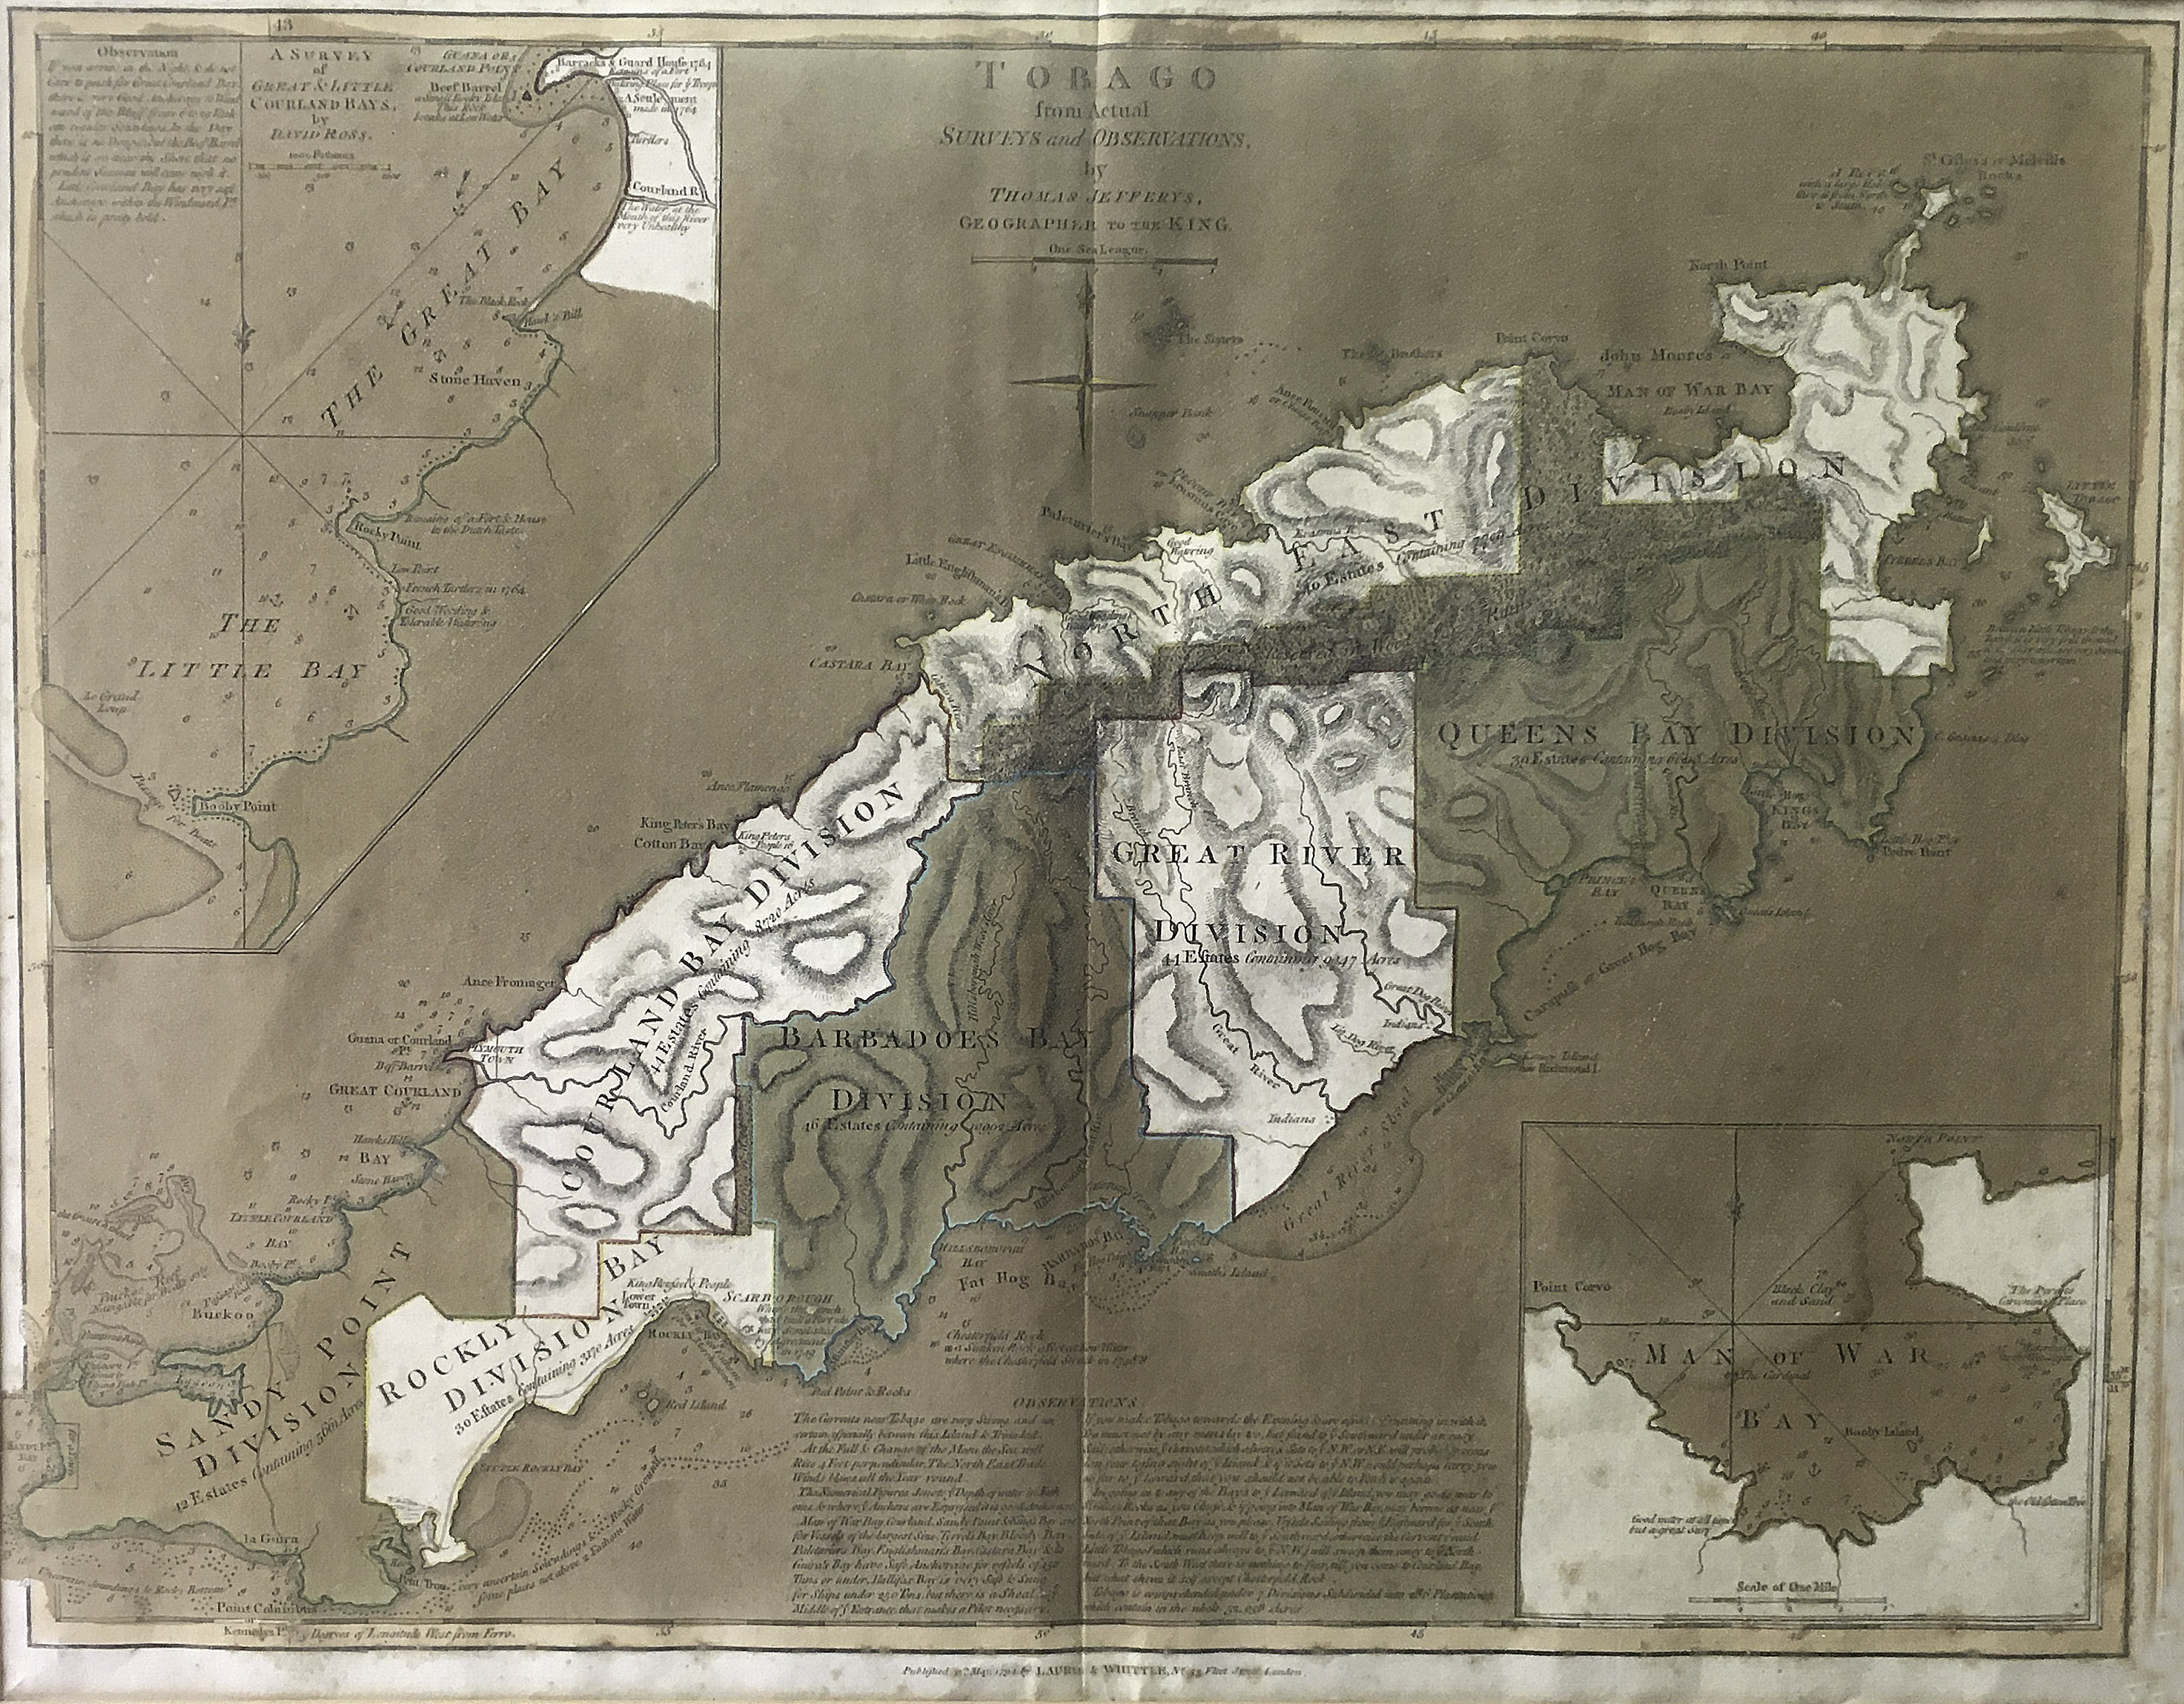 Tobago from Actual Surveys and Observations by Thomas Jefferys, Geographer to the King. 1794